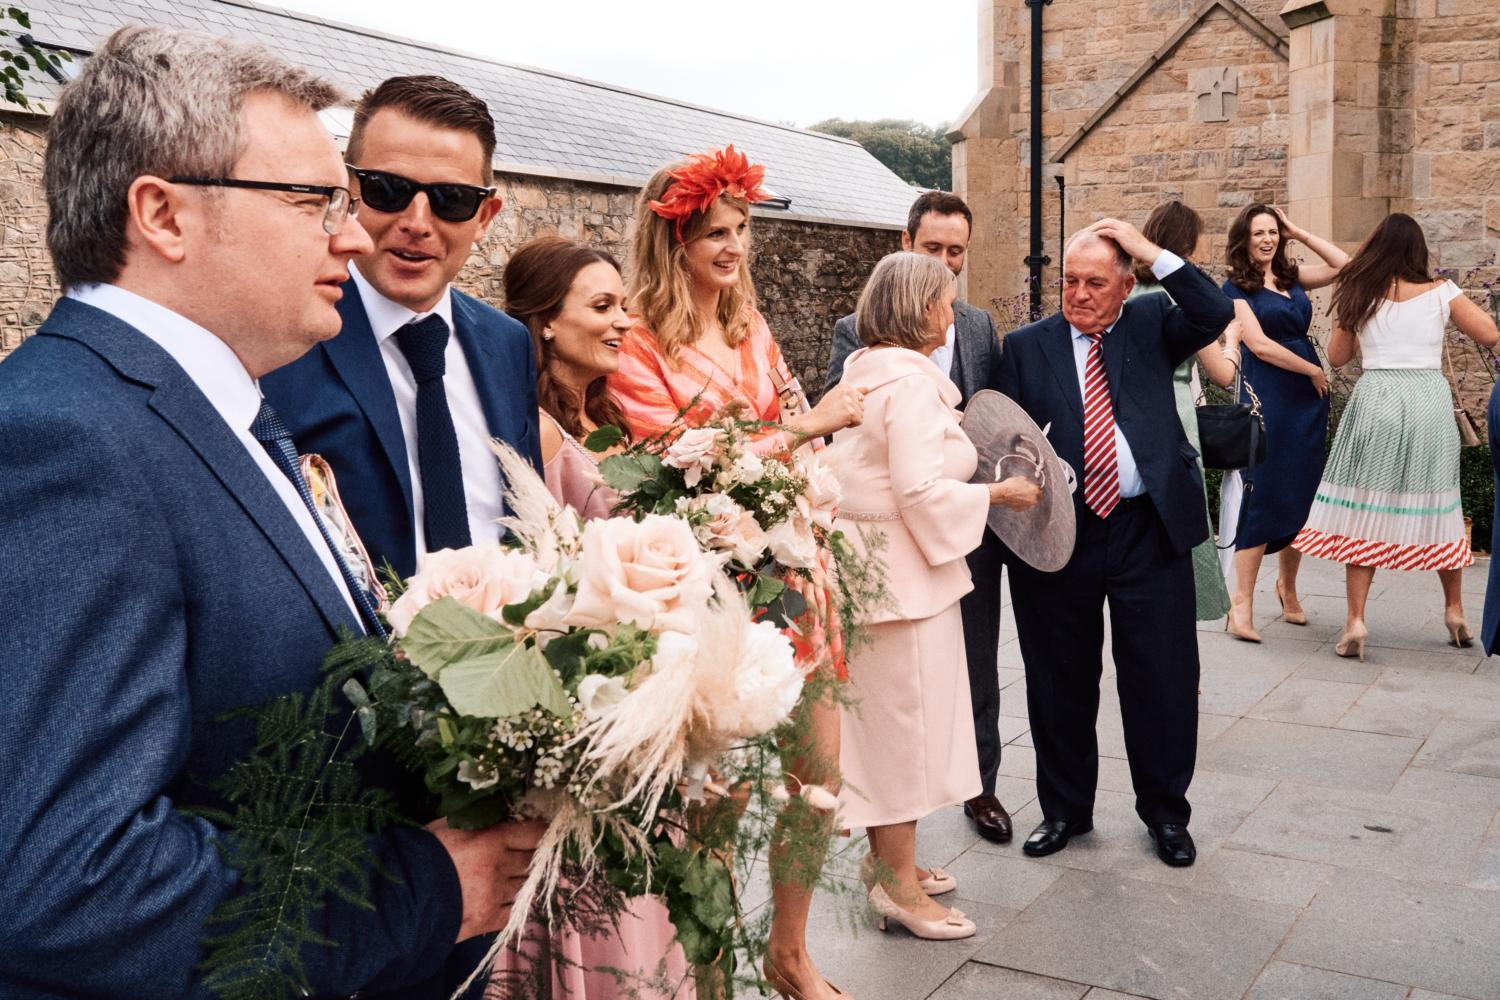 Wedding guests holding flowers outside a chapel